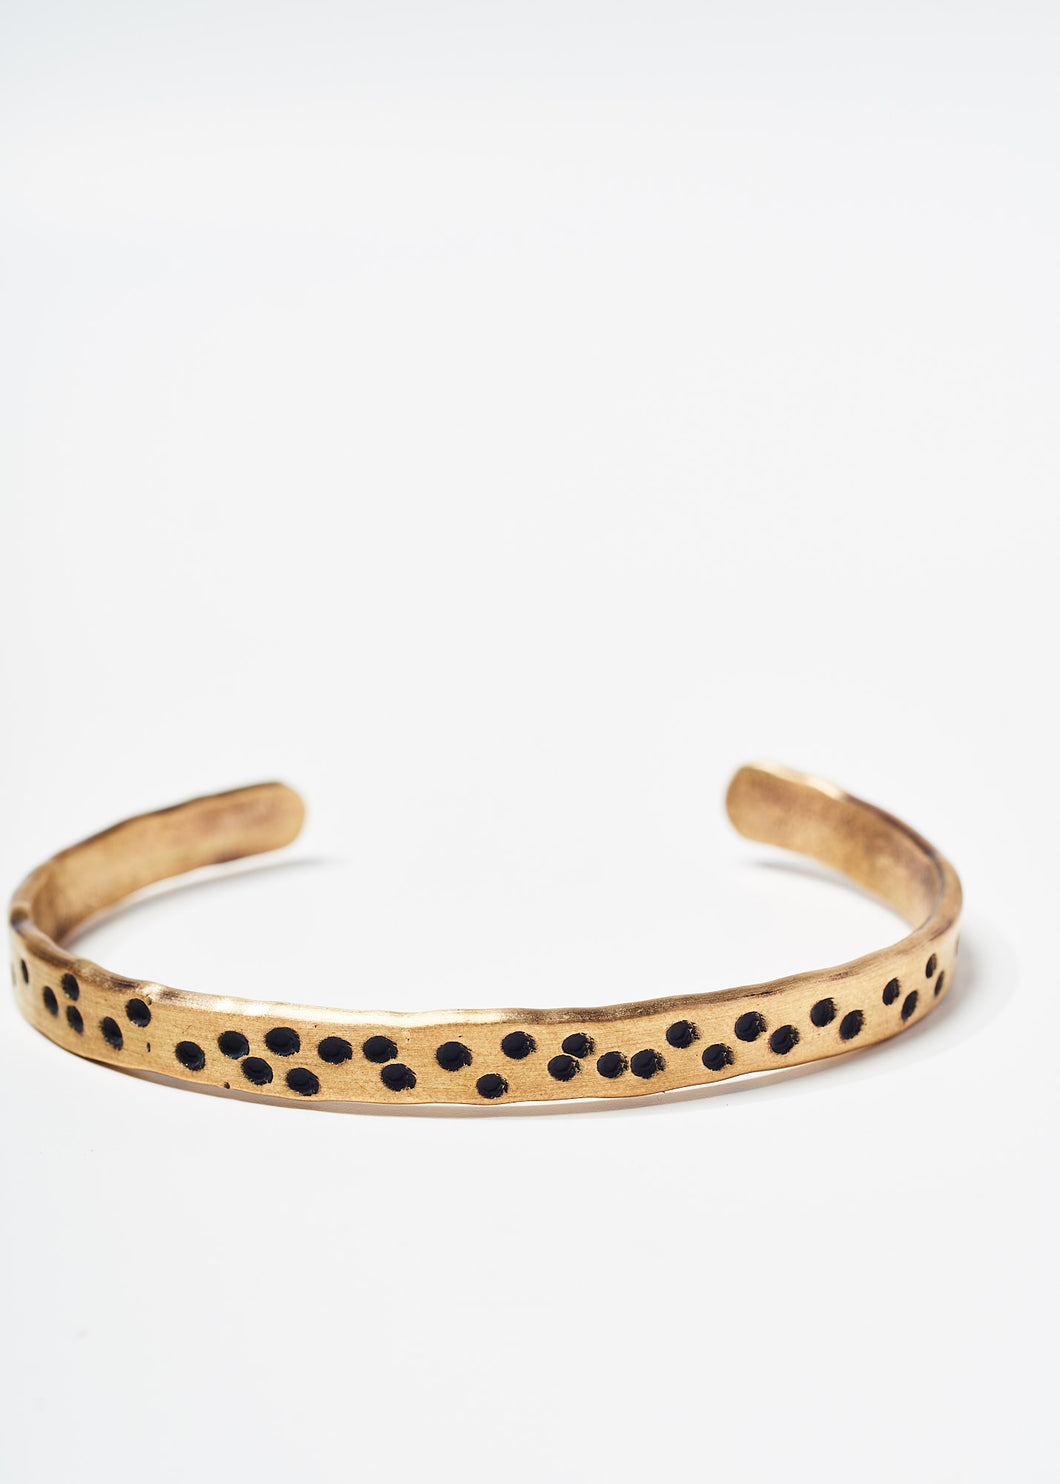 Copy of Brass Cuff With Dots